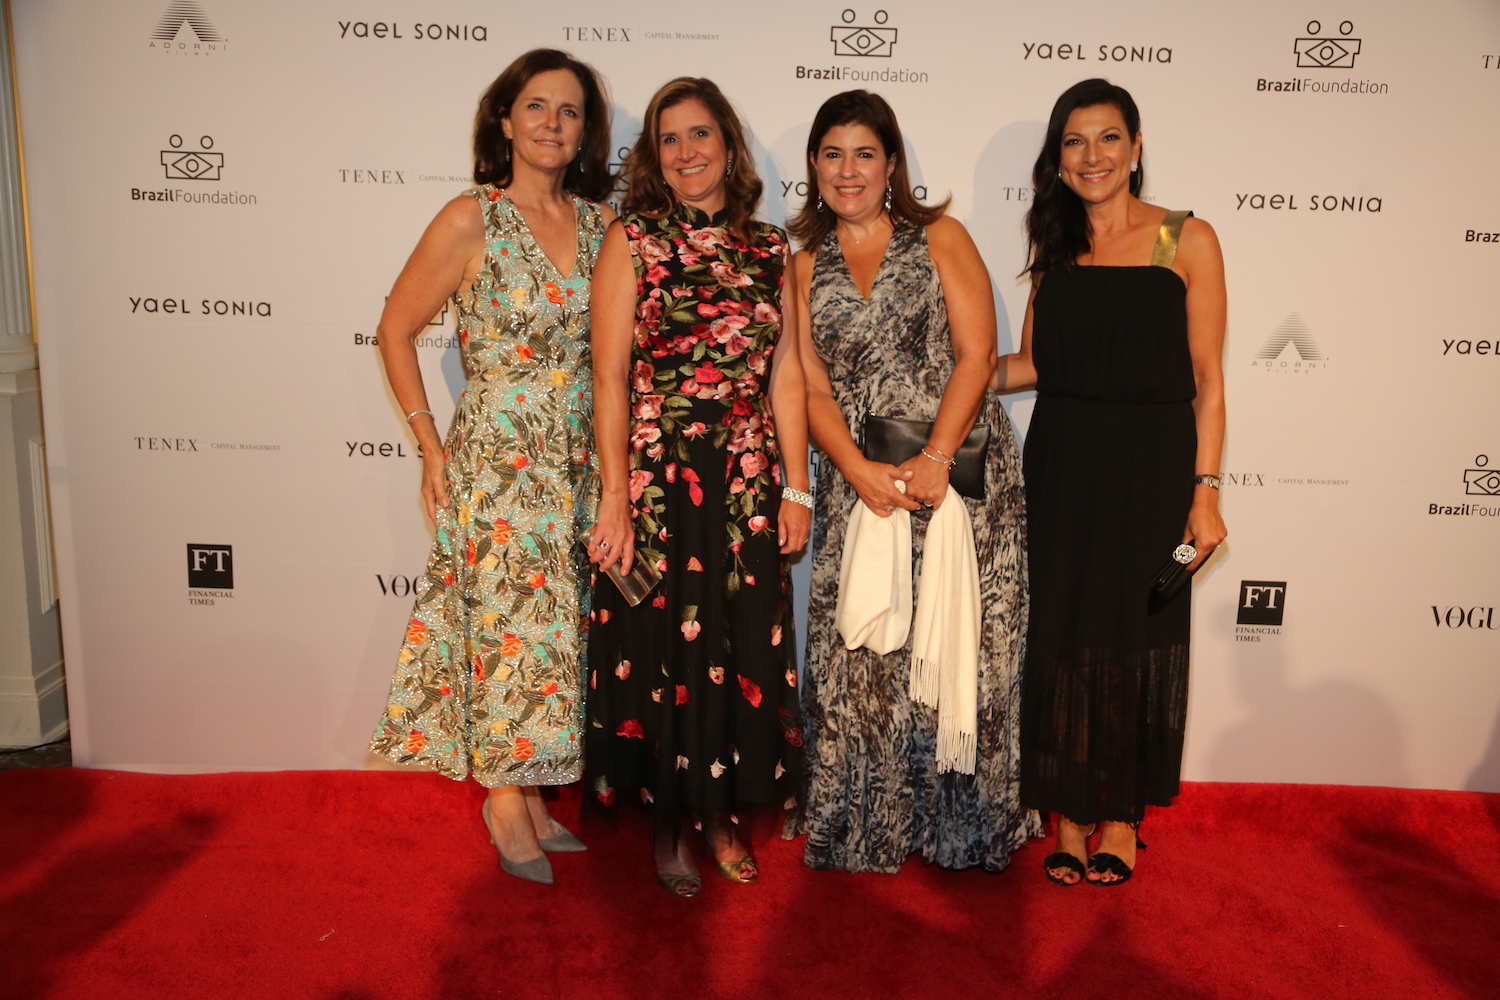 BrazilFoundation XVI Gala New York Celebrating the Amazon Plaza